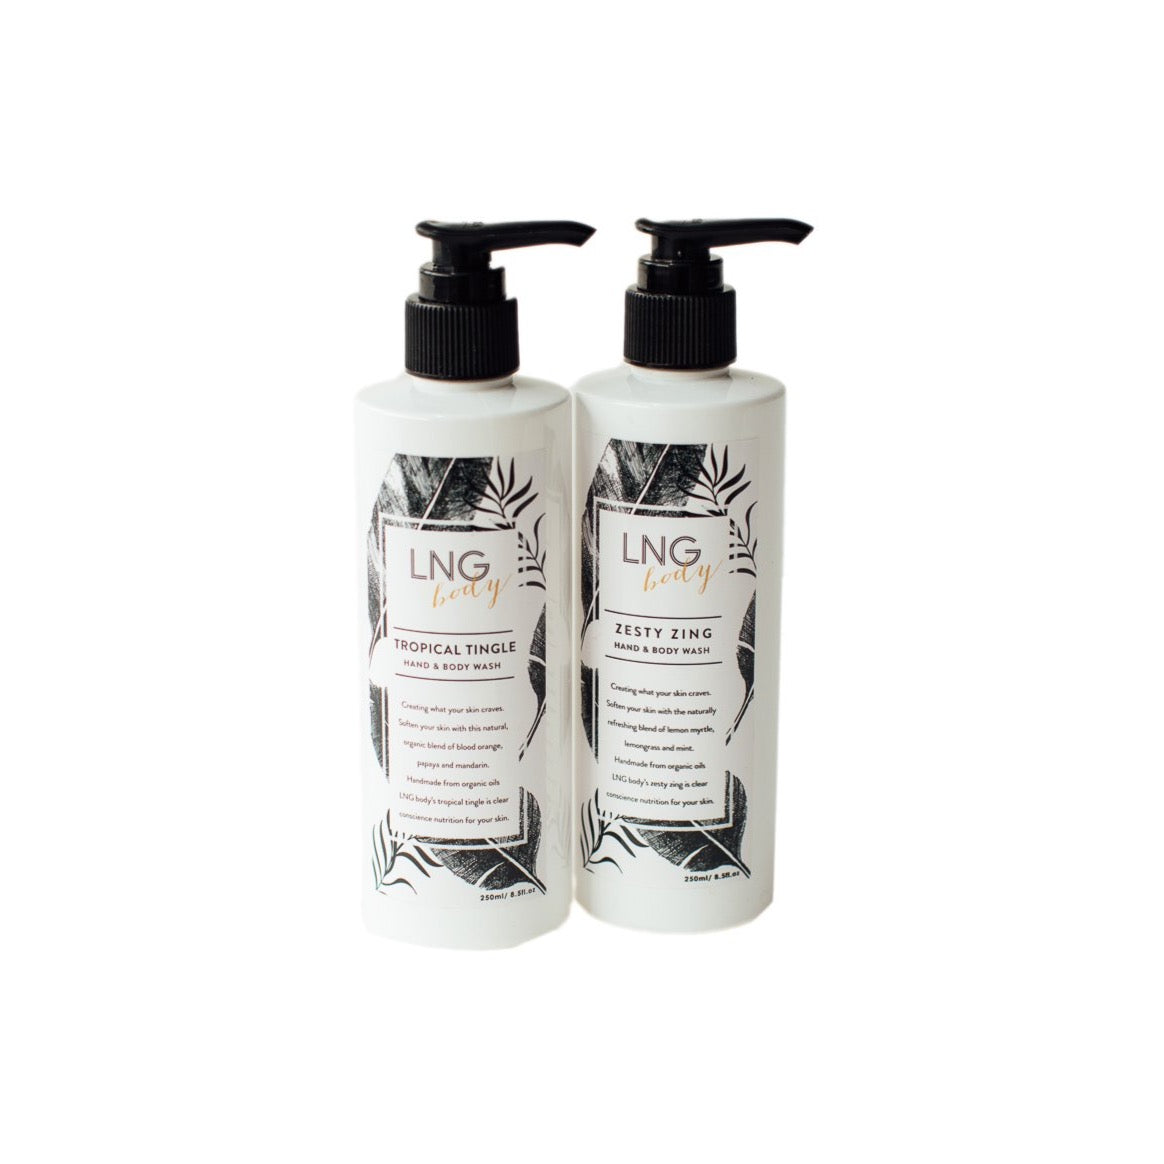 Organic Hand and Body Wash 250ml - Light & Glo. Designs